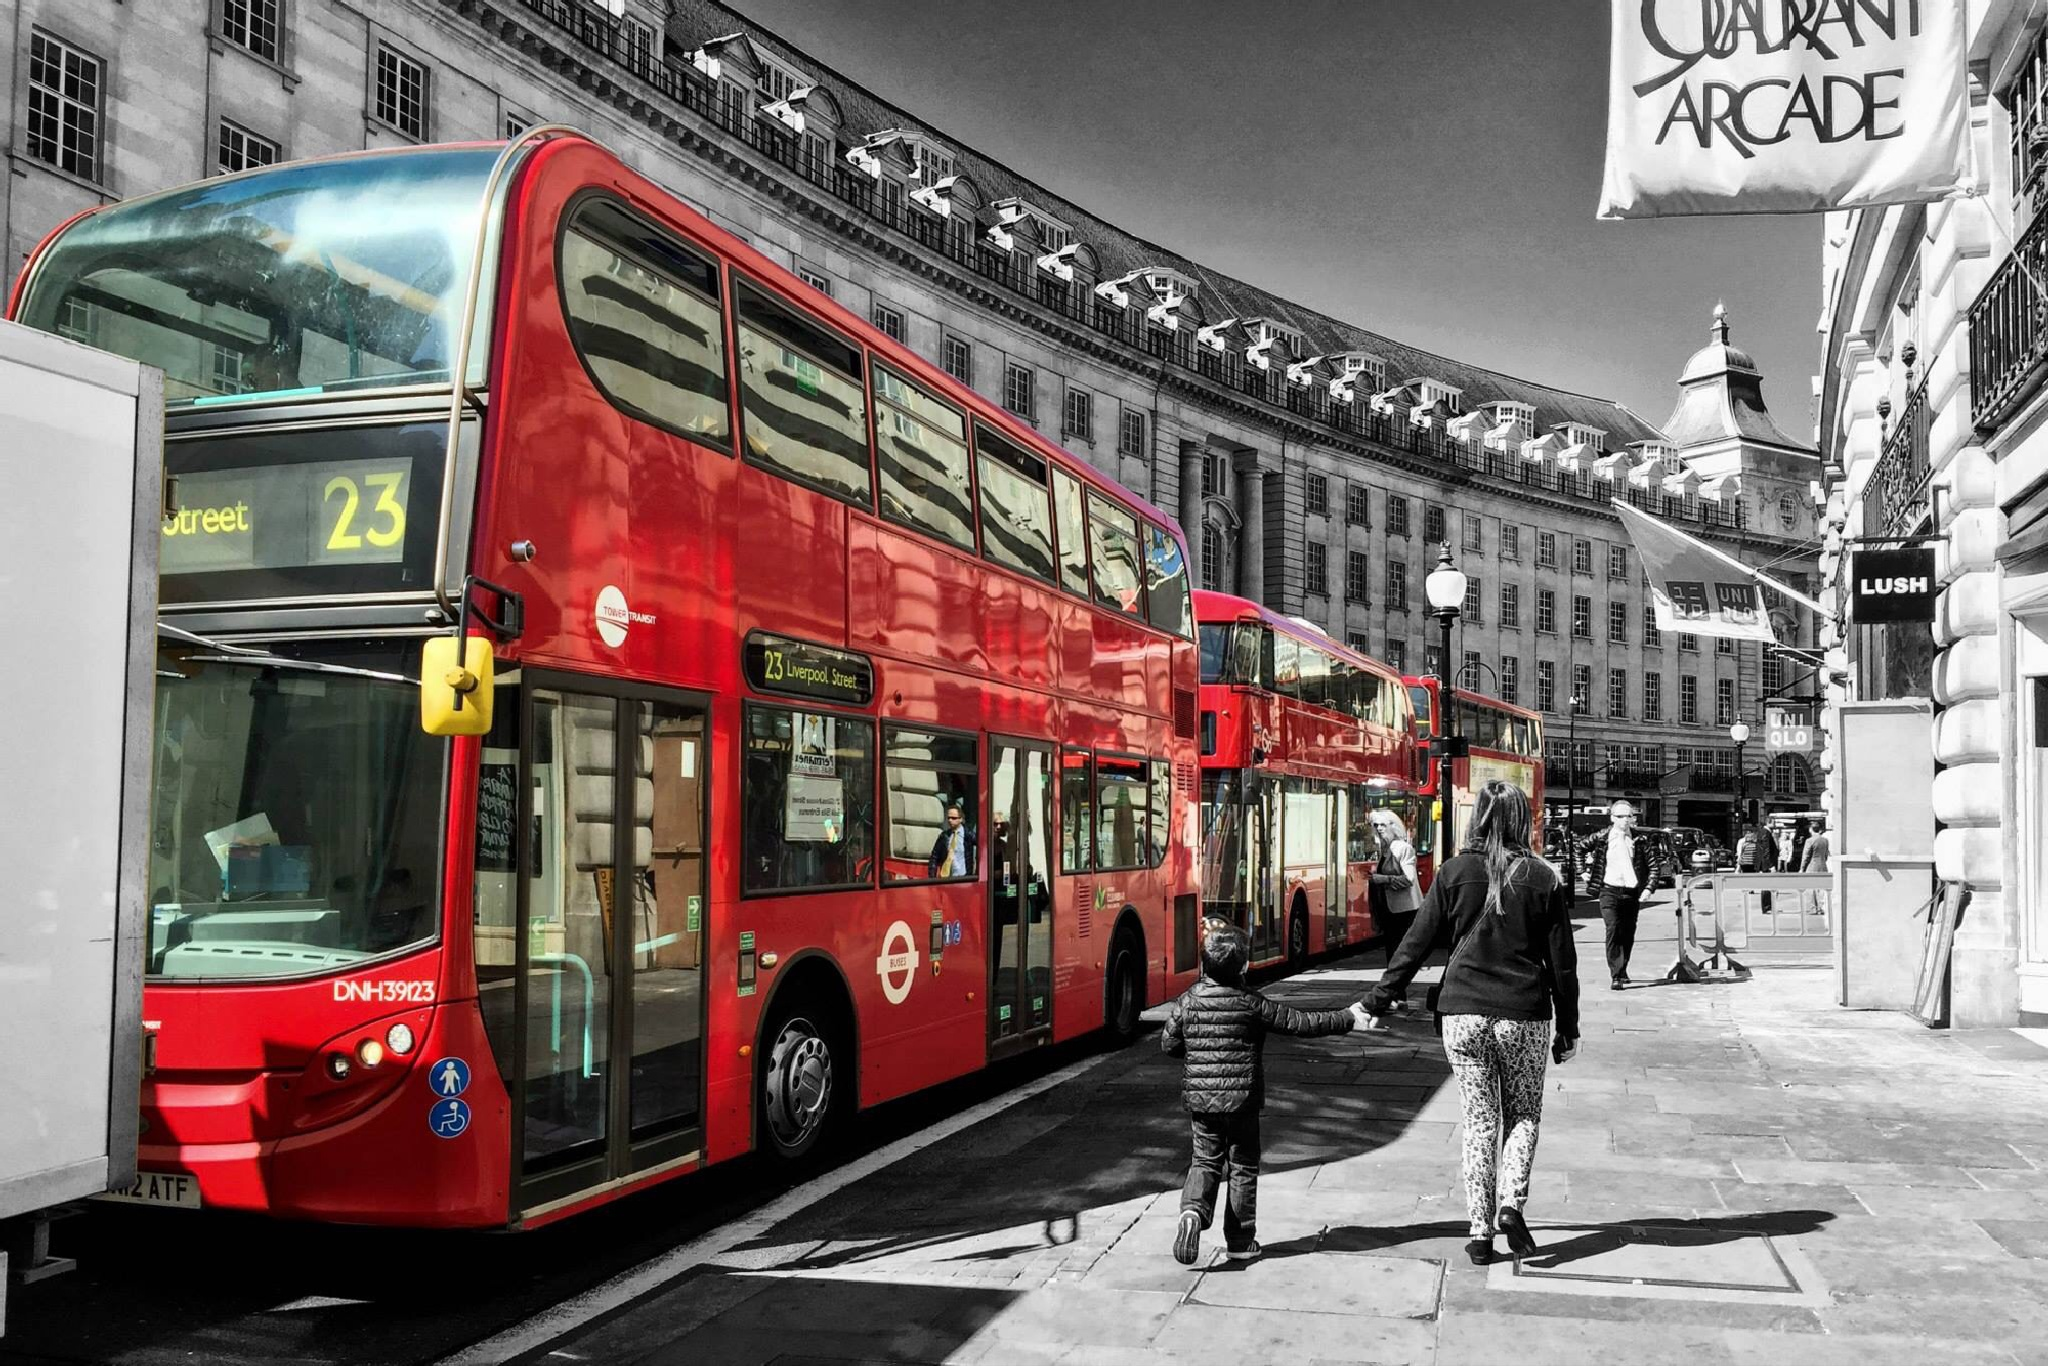 Streets of London by Elfort